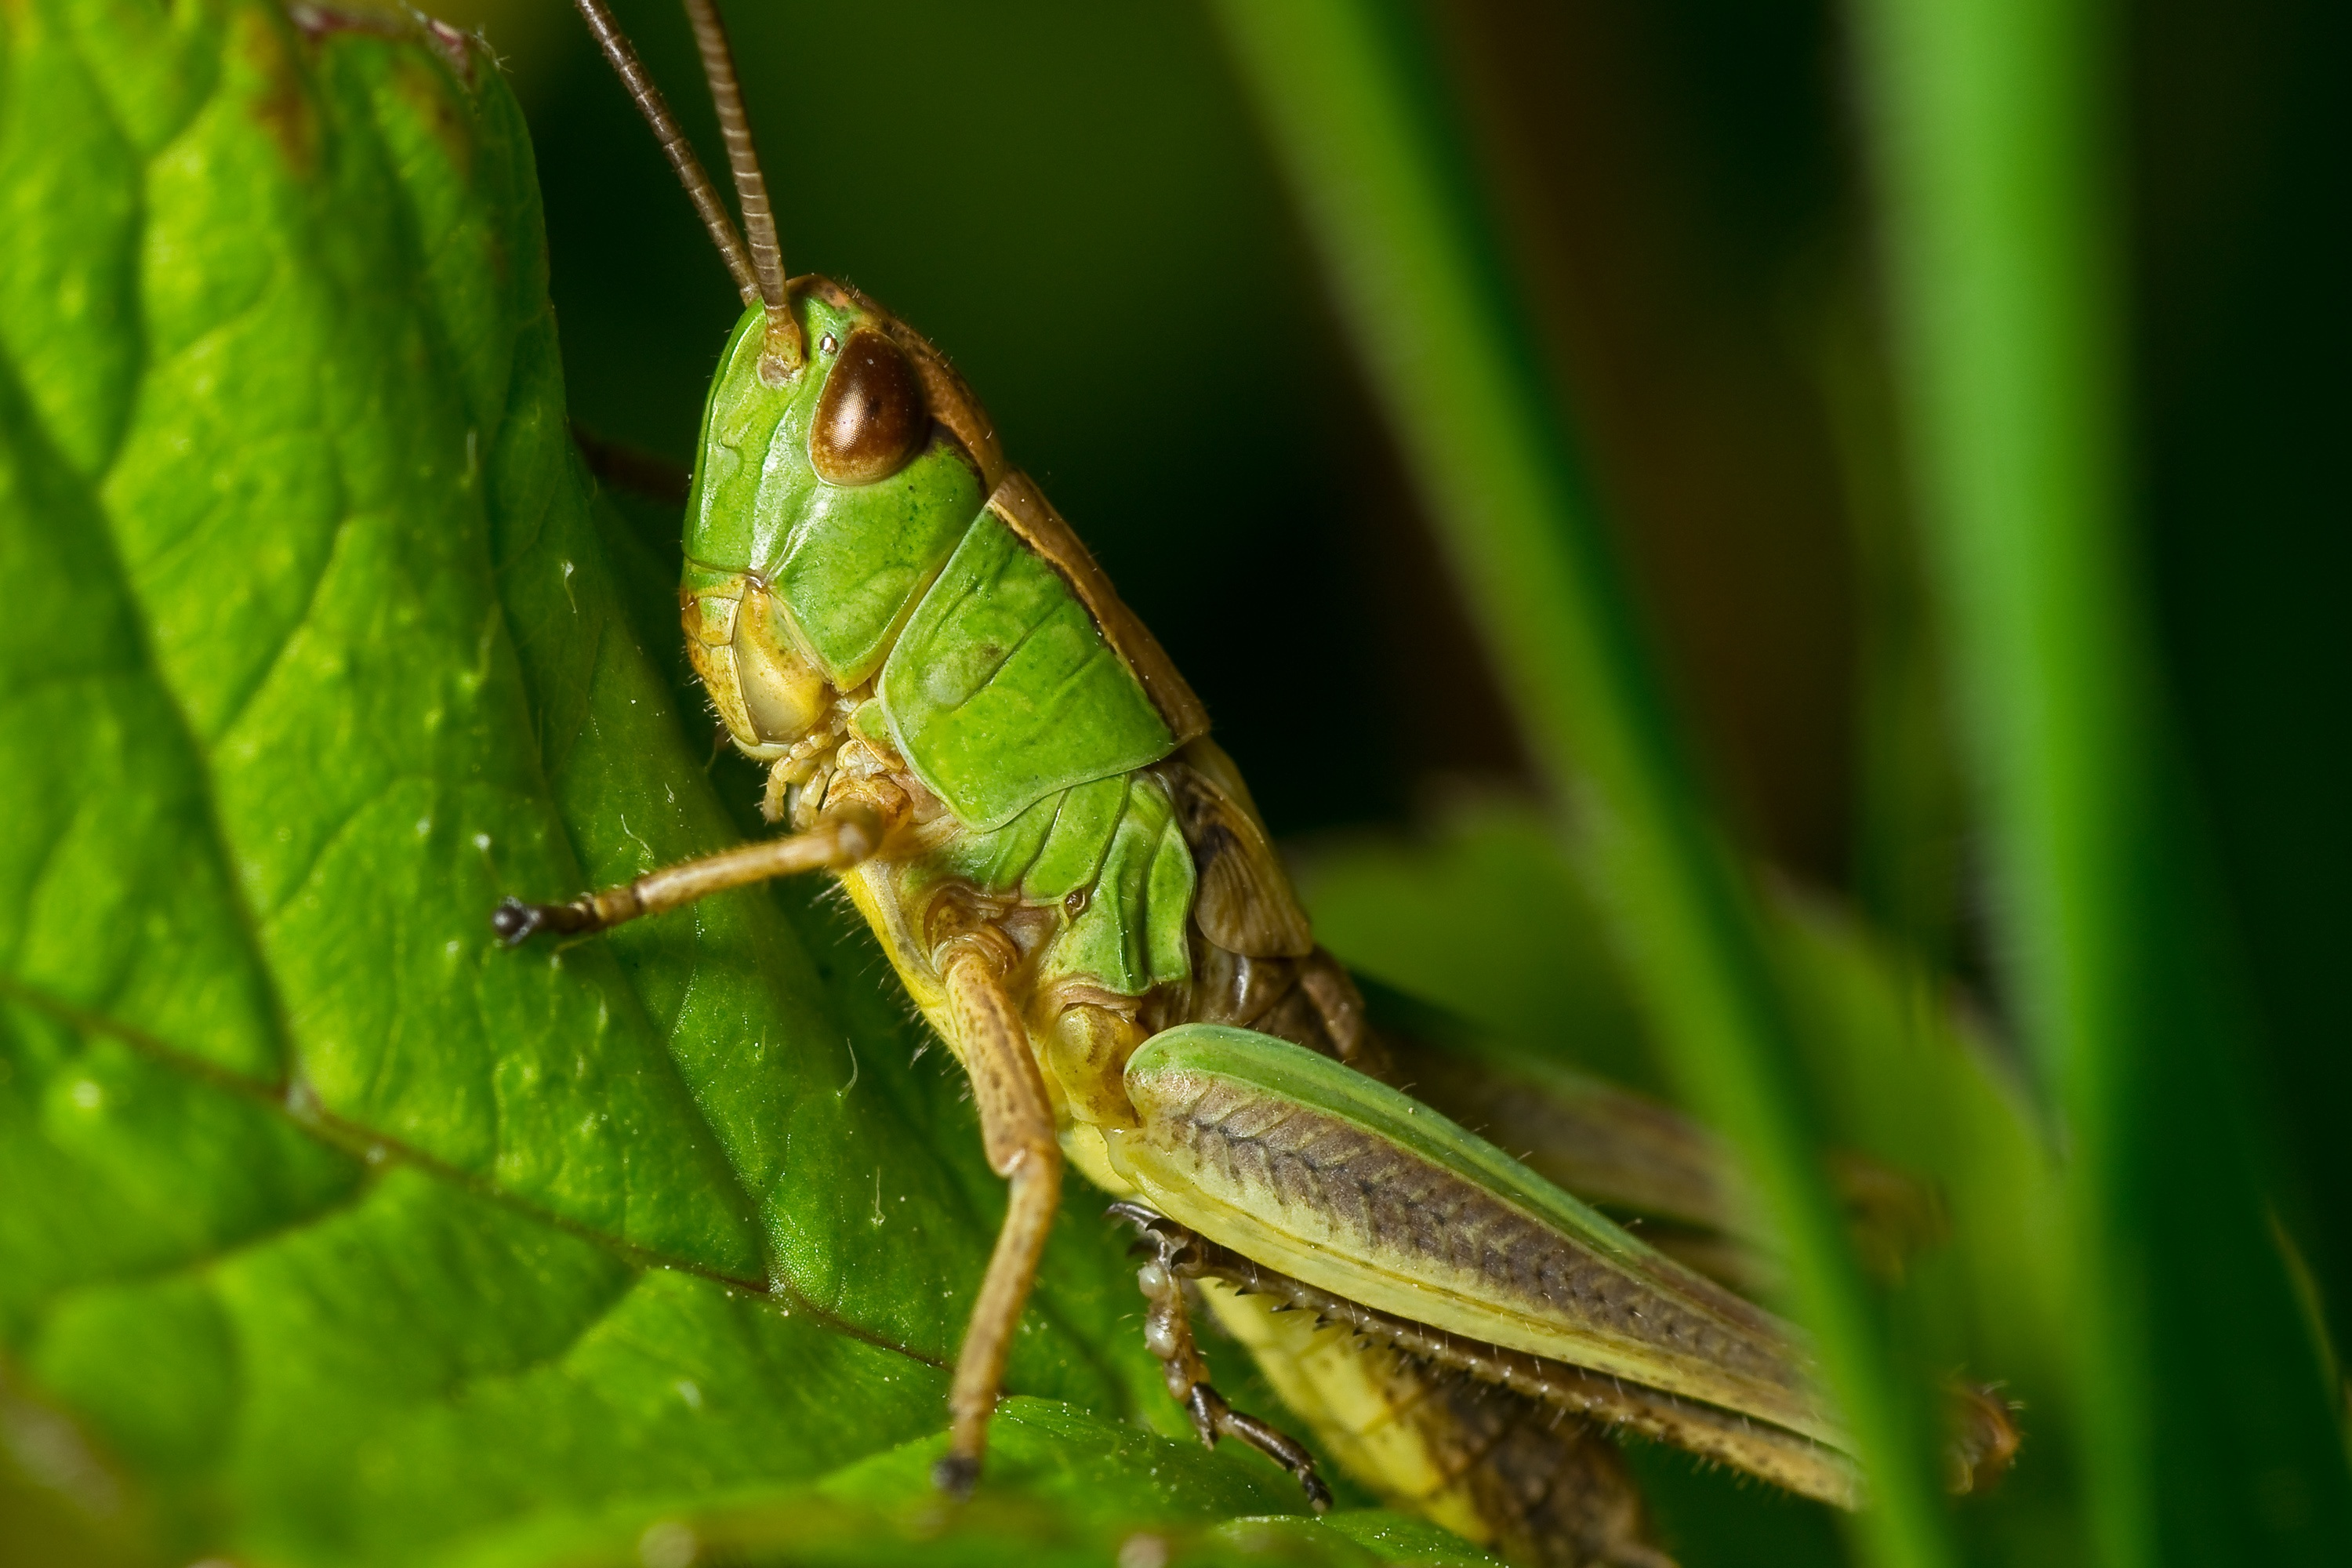 Grasshopper Green and Yellow · Free Stock Photo